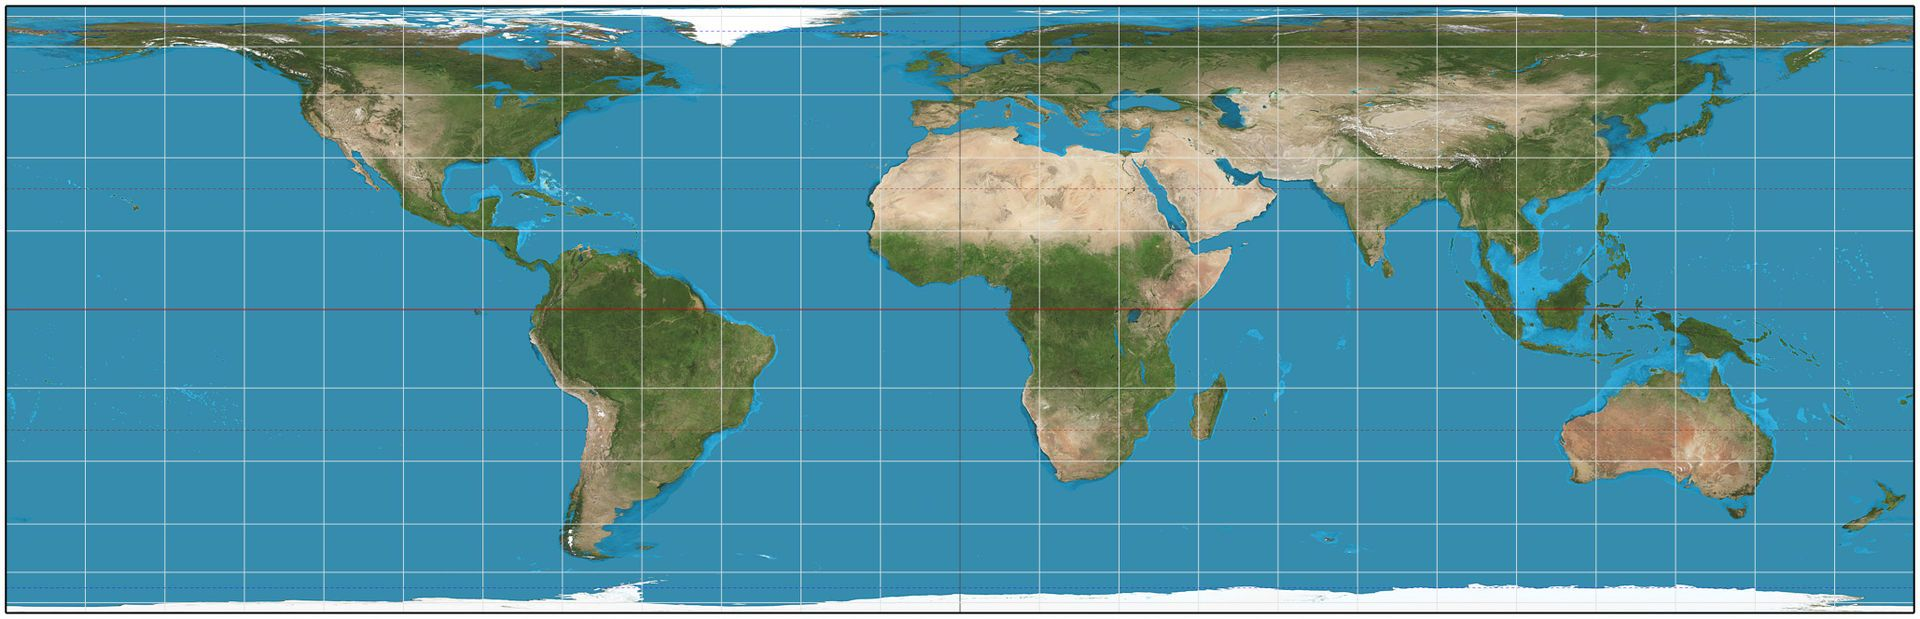 Lambert Cylindrical Equal Area Projection Wikipedia The Free Encyclopedia Accurate World Map New World Map World Map